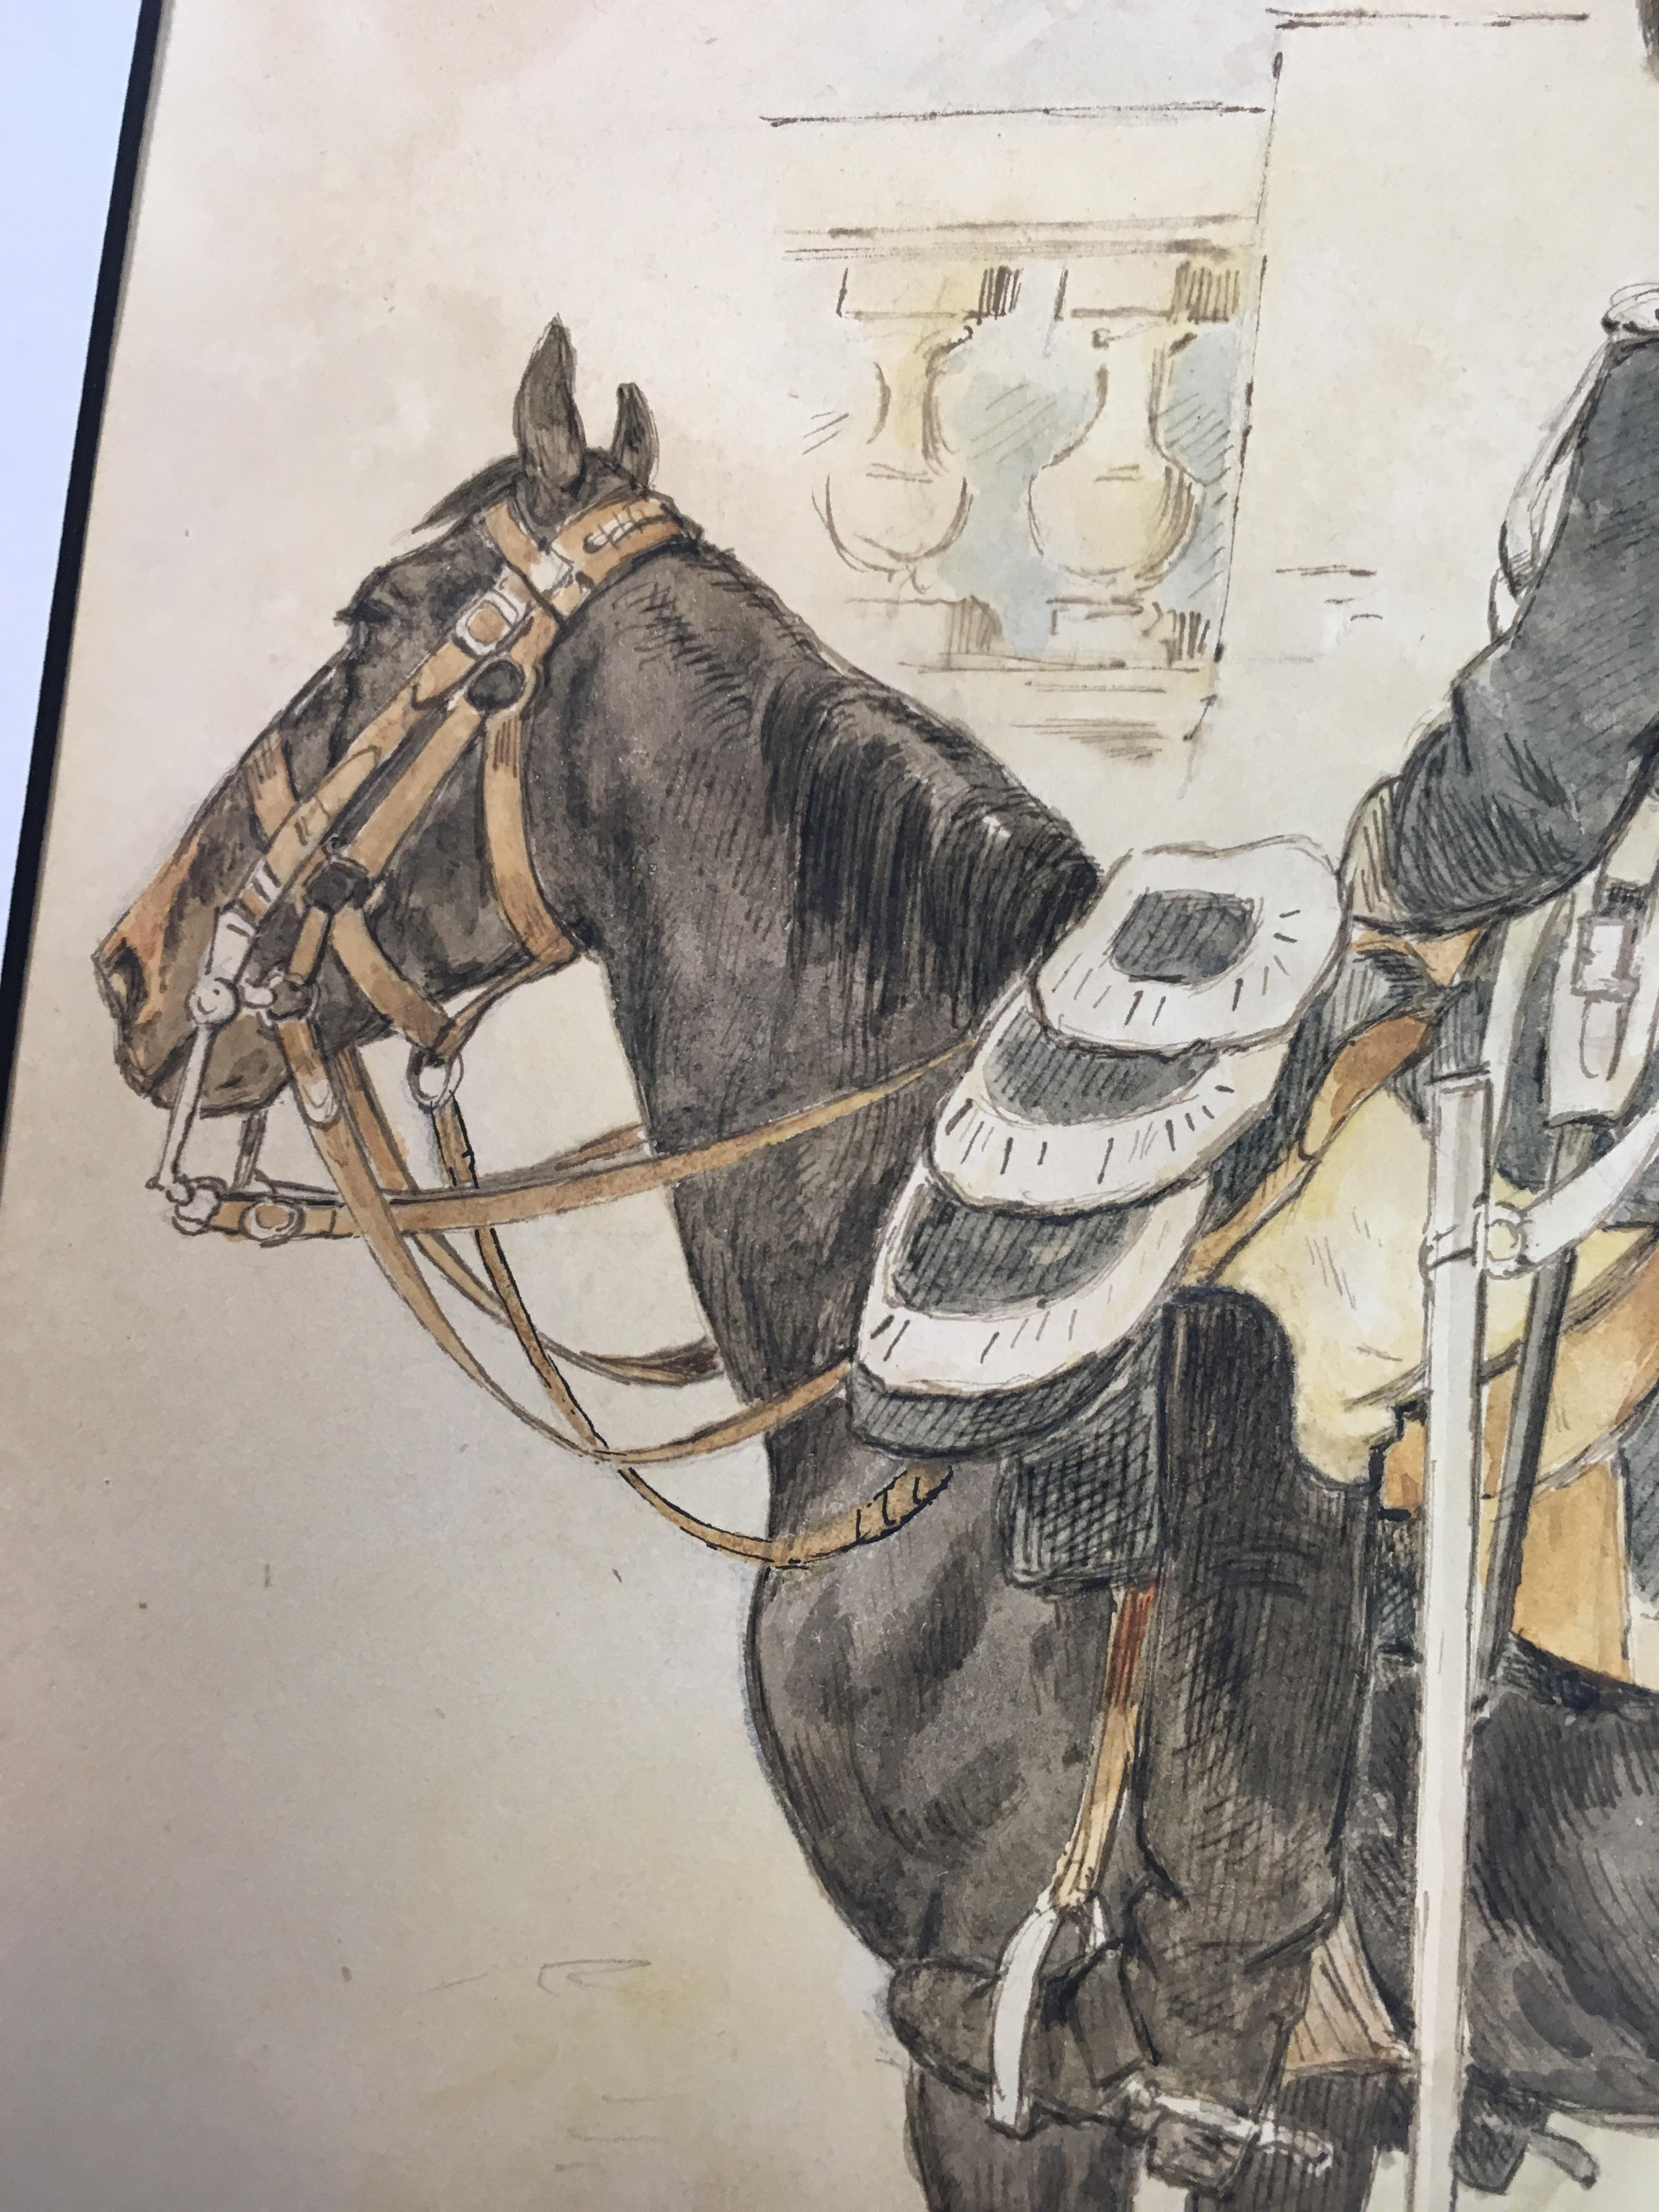 Lot 100 - ALFRED WILLIAM HASSAM (1842-1869) A MOUNTED OFFICER, POSSIBLY A FRENCH HEAVY CAVALRYMAN